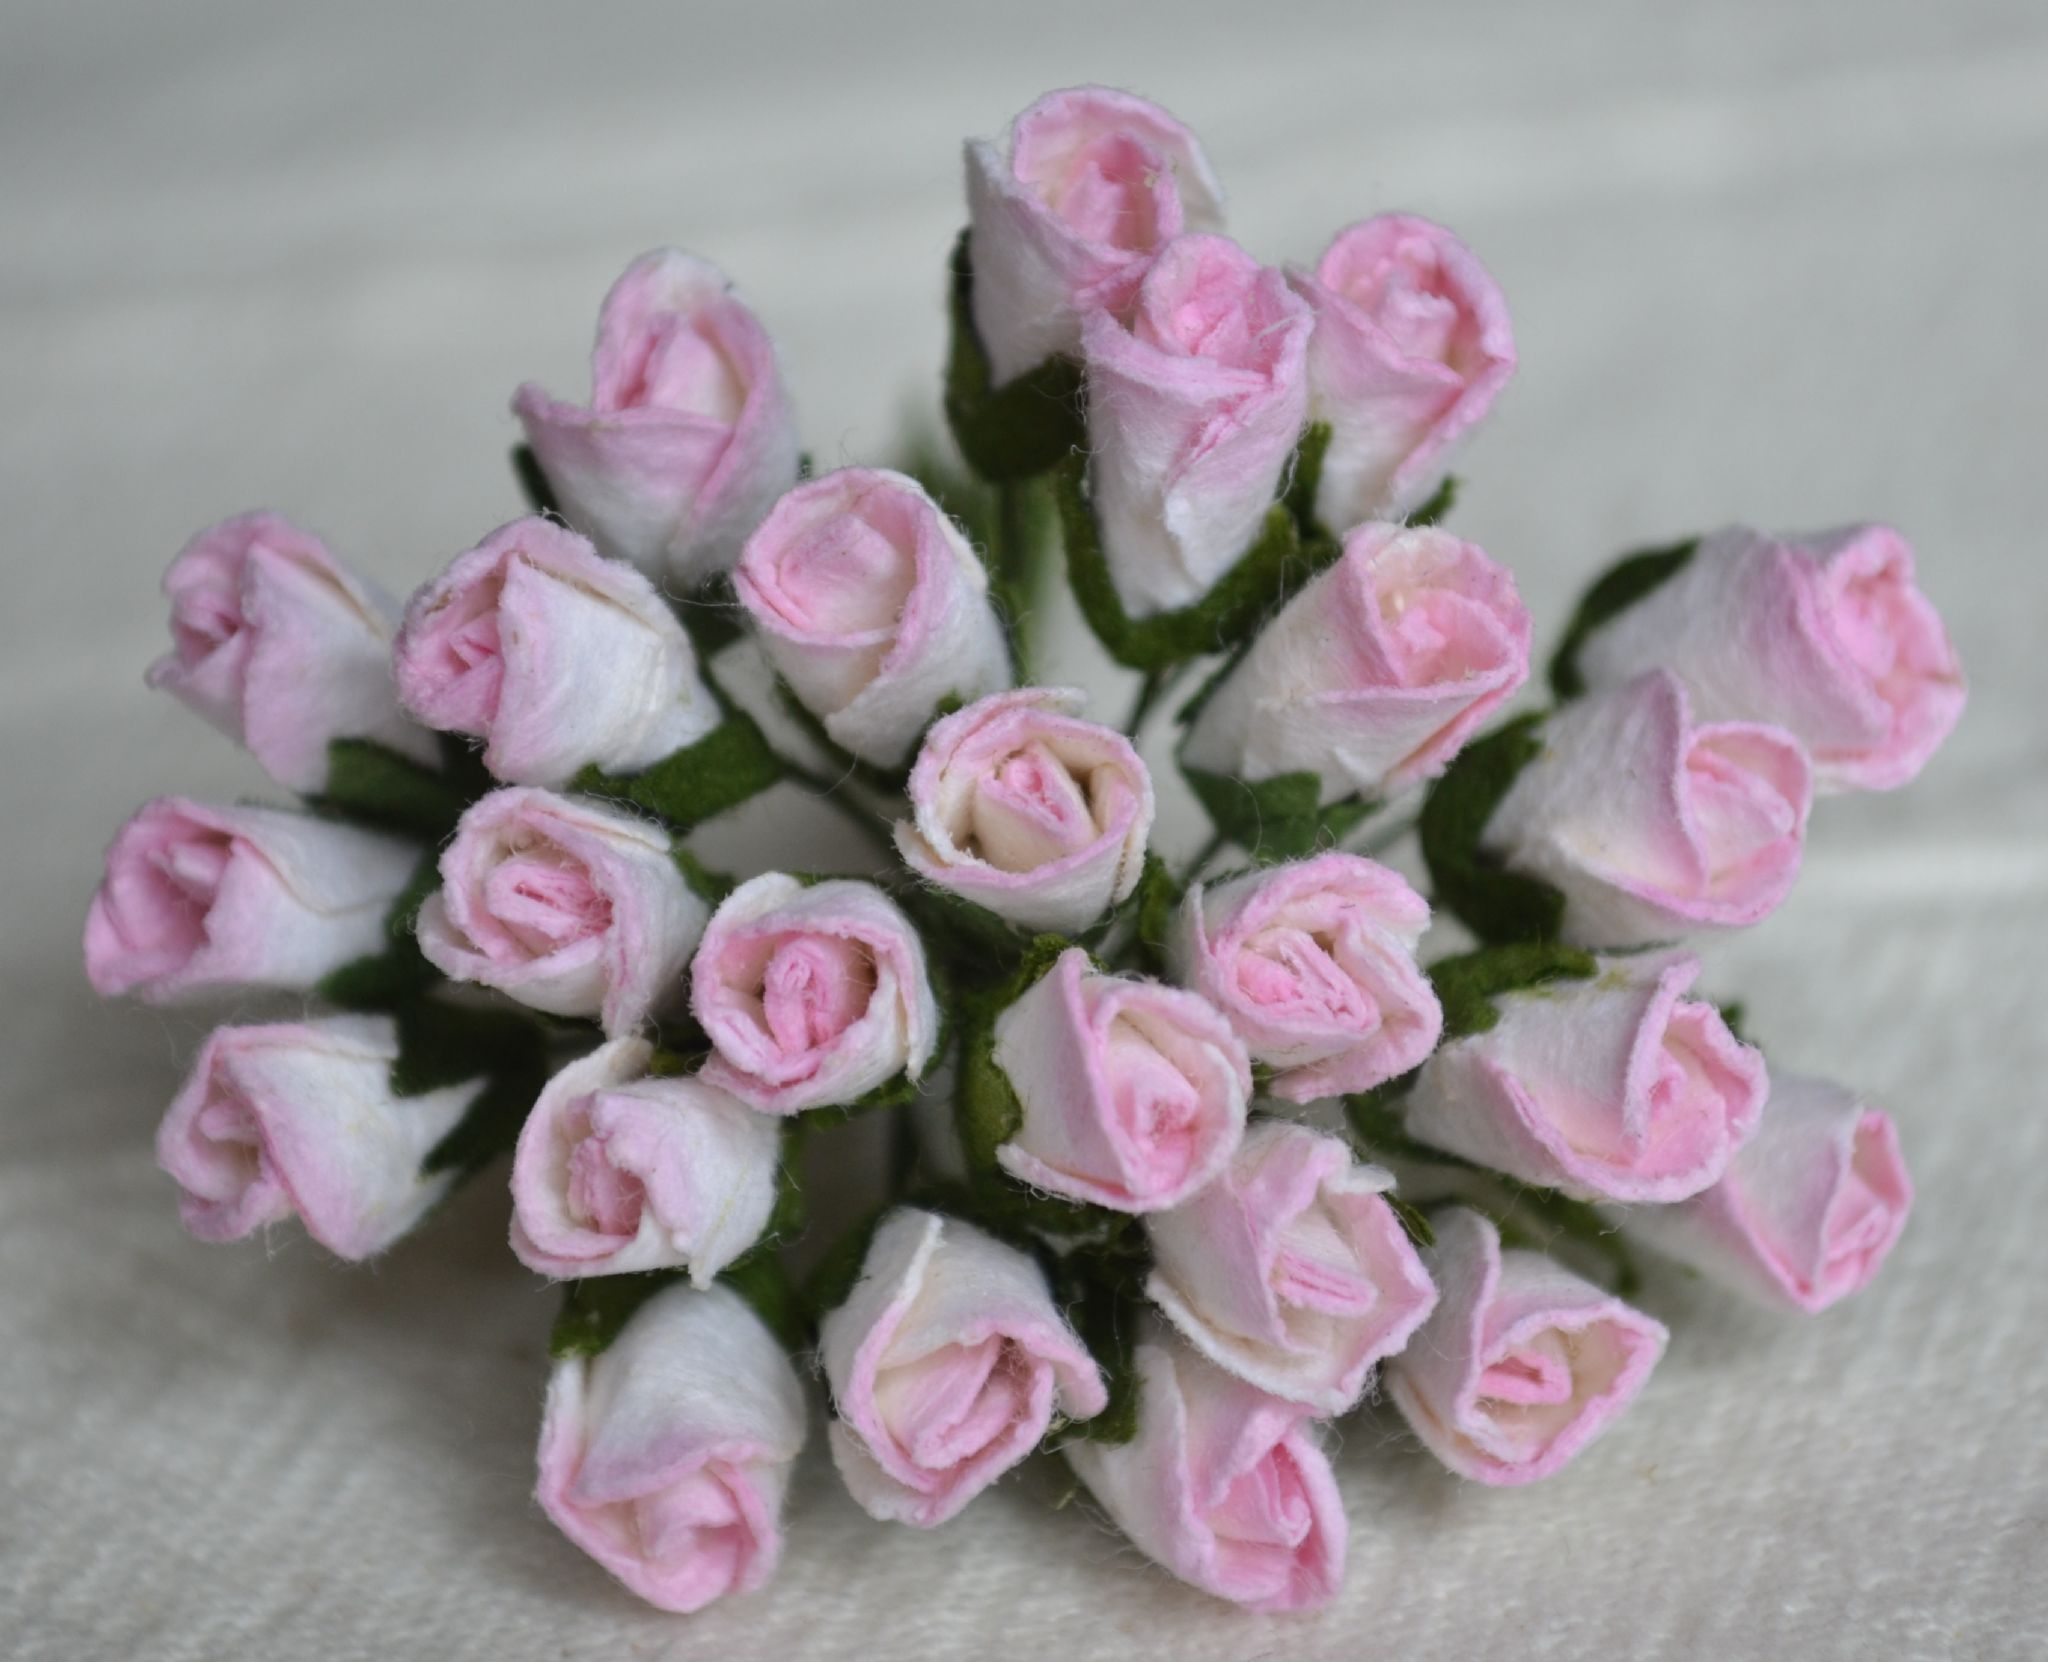 6mm Light Rosy Pink Rose Buds L Mulberry Paper Flowers